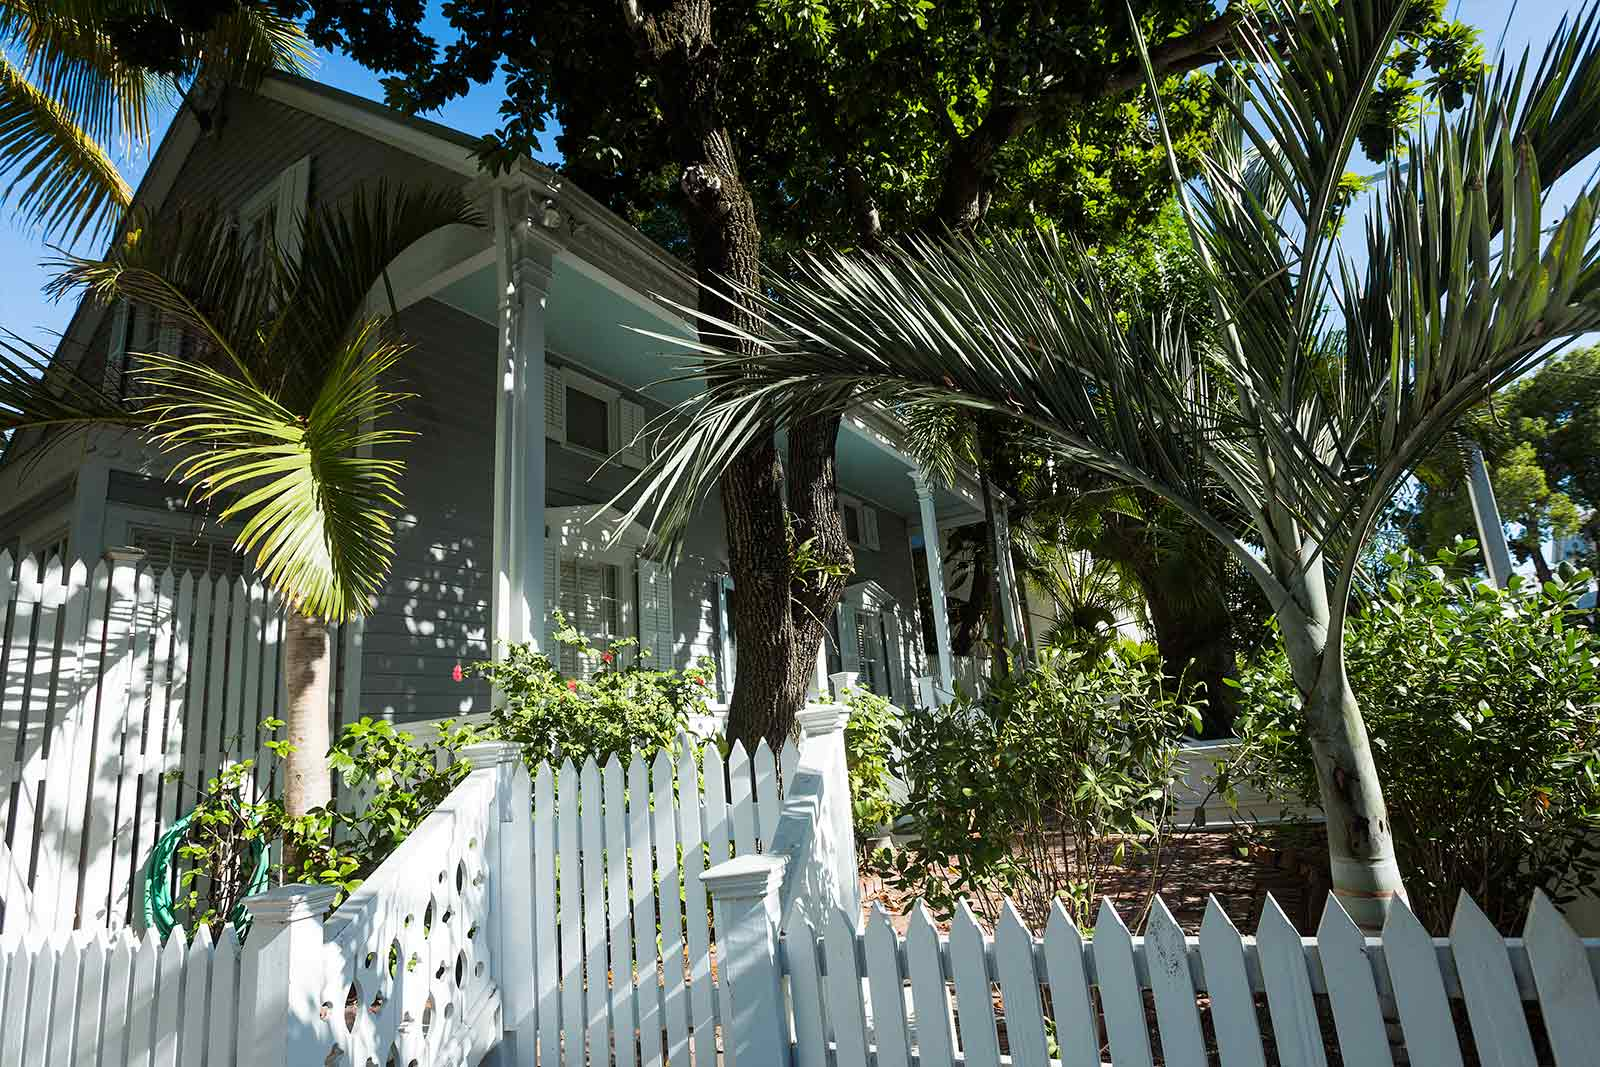 Key West houses are often surrounded by lathe-turned picket fences that wrap around the entire structure. Blooming bushes add a visual pop and fresh contrast to fancifully painted homes.